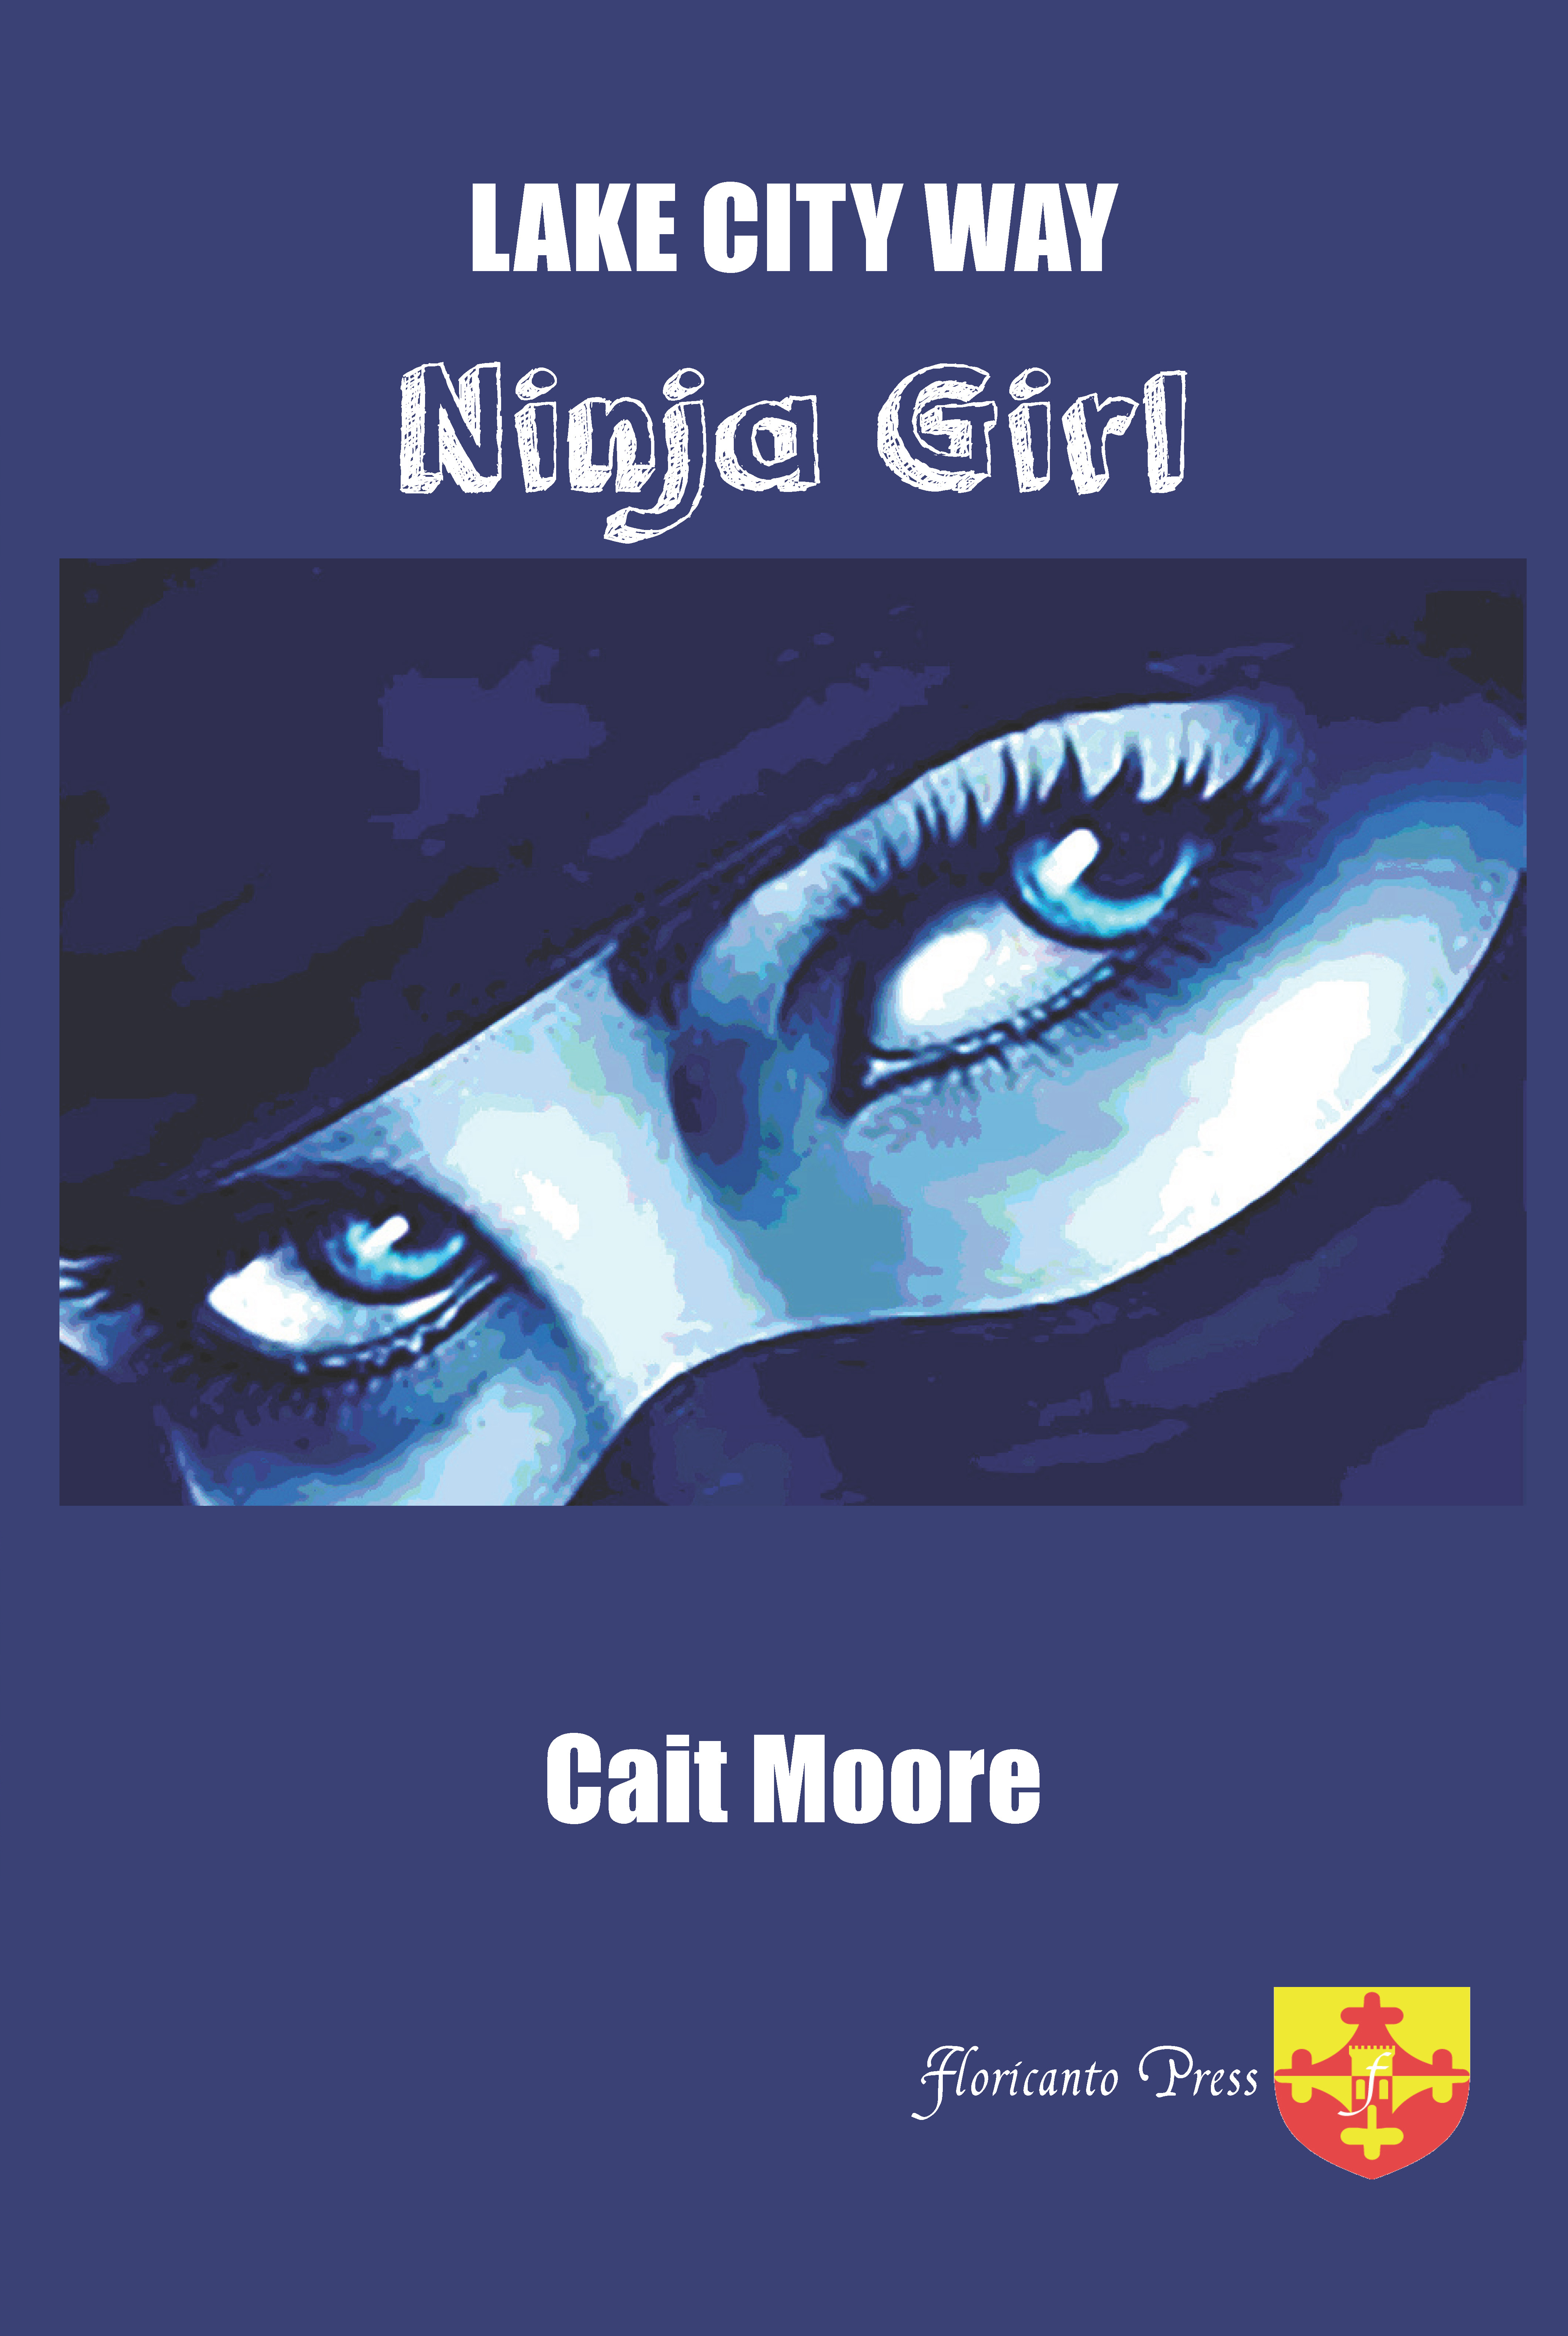 Lake City Way  Ninja Girl. By Cait Moore.